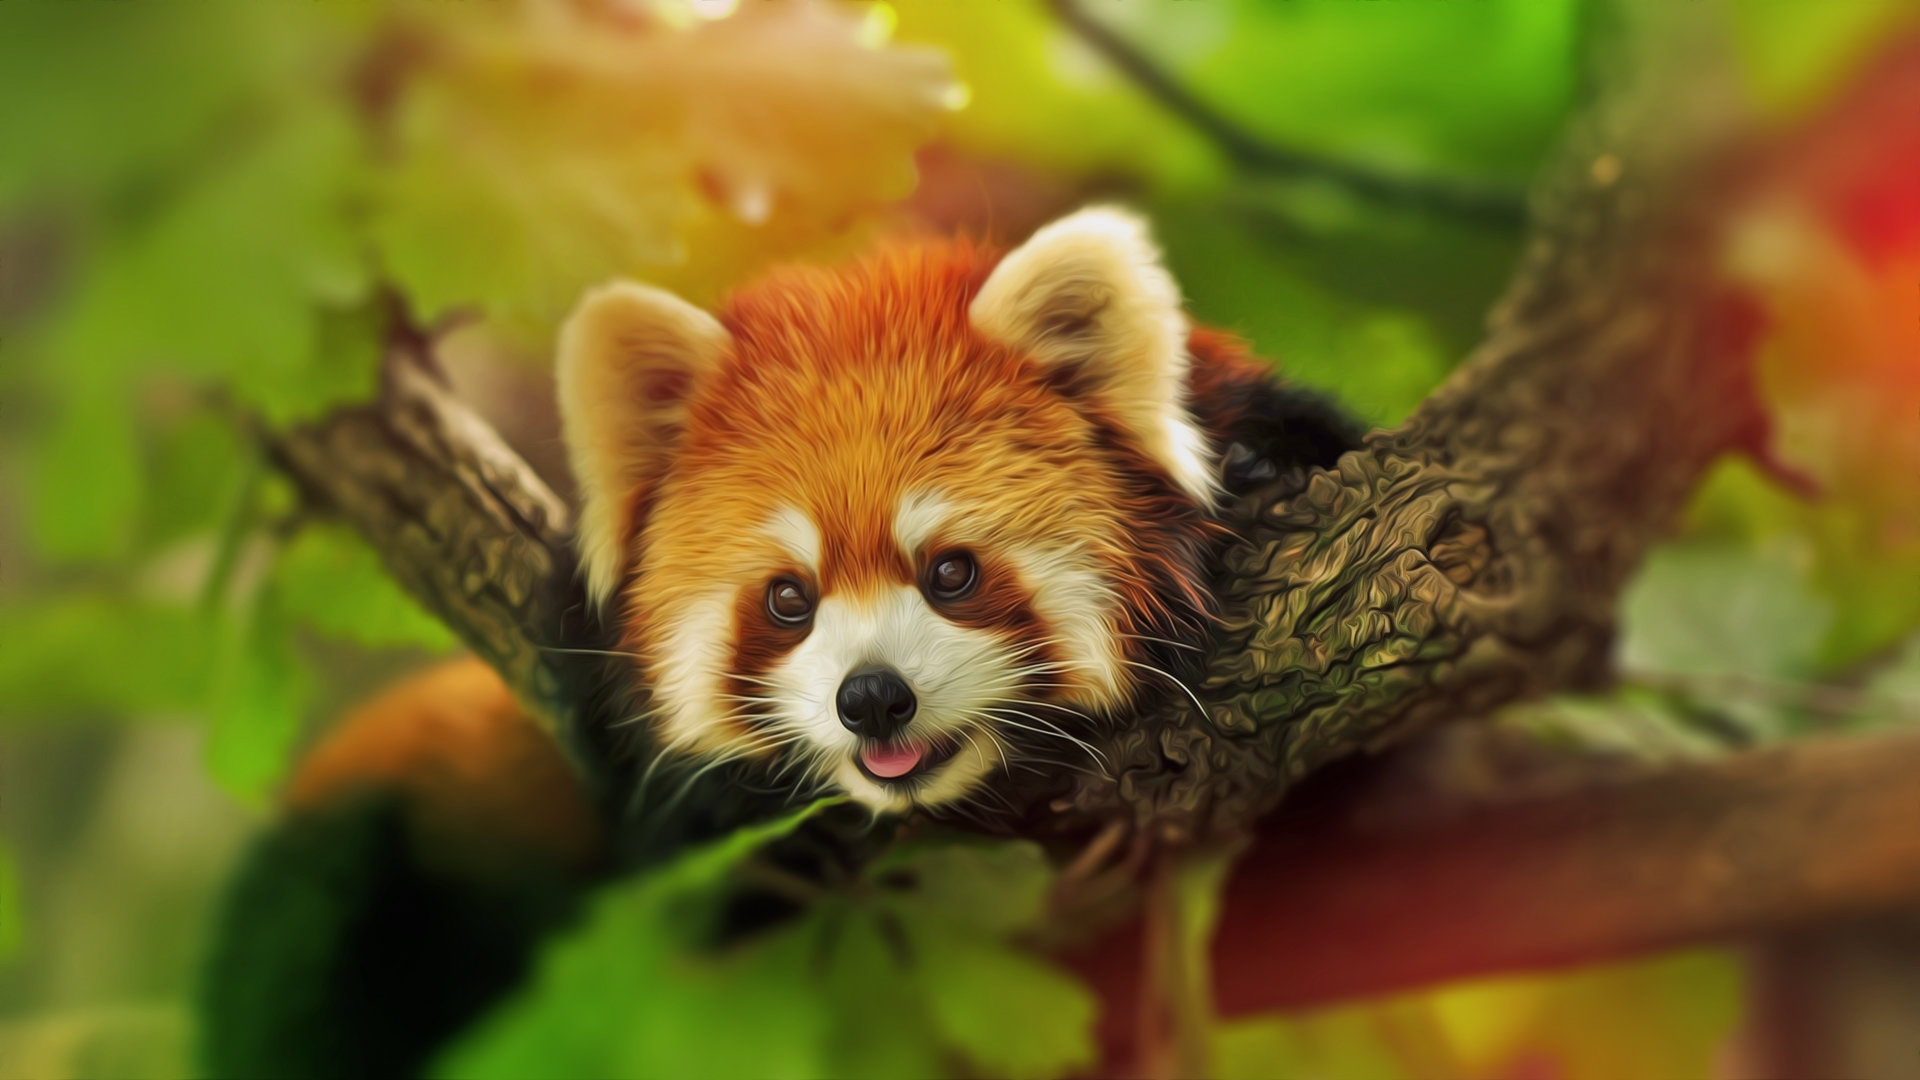 High resolution Red Panda full hd wallpaper ID:64045 for PC